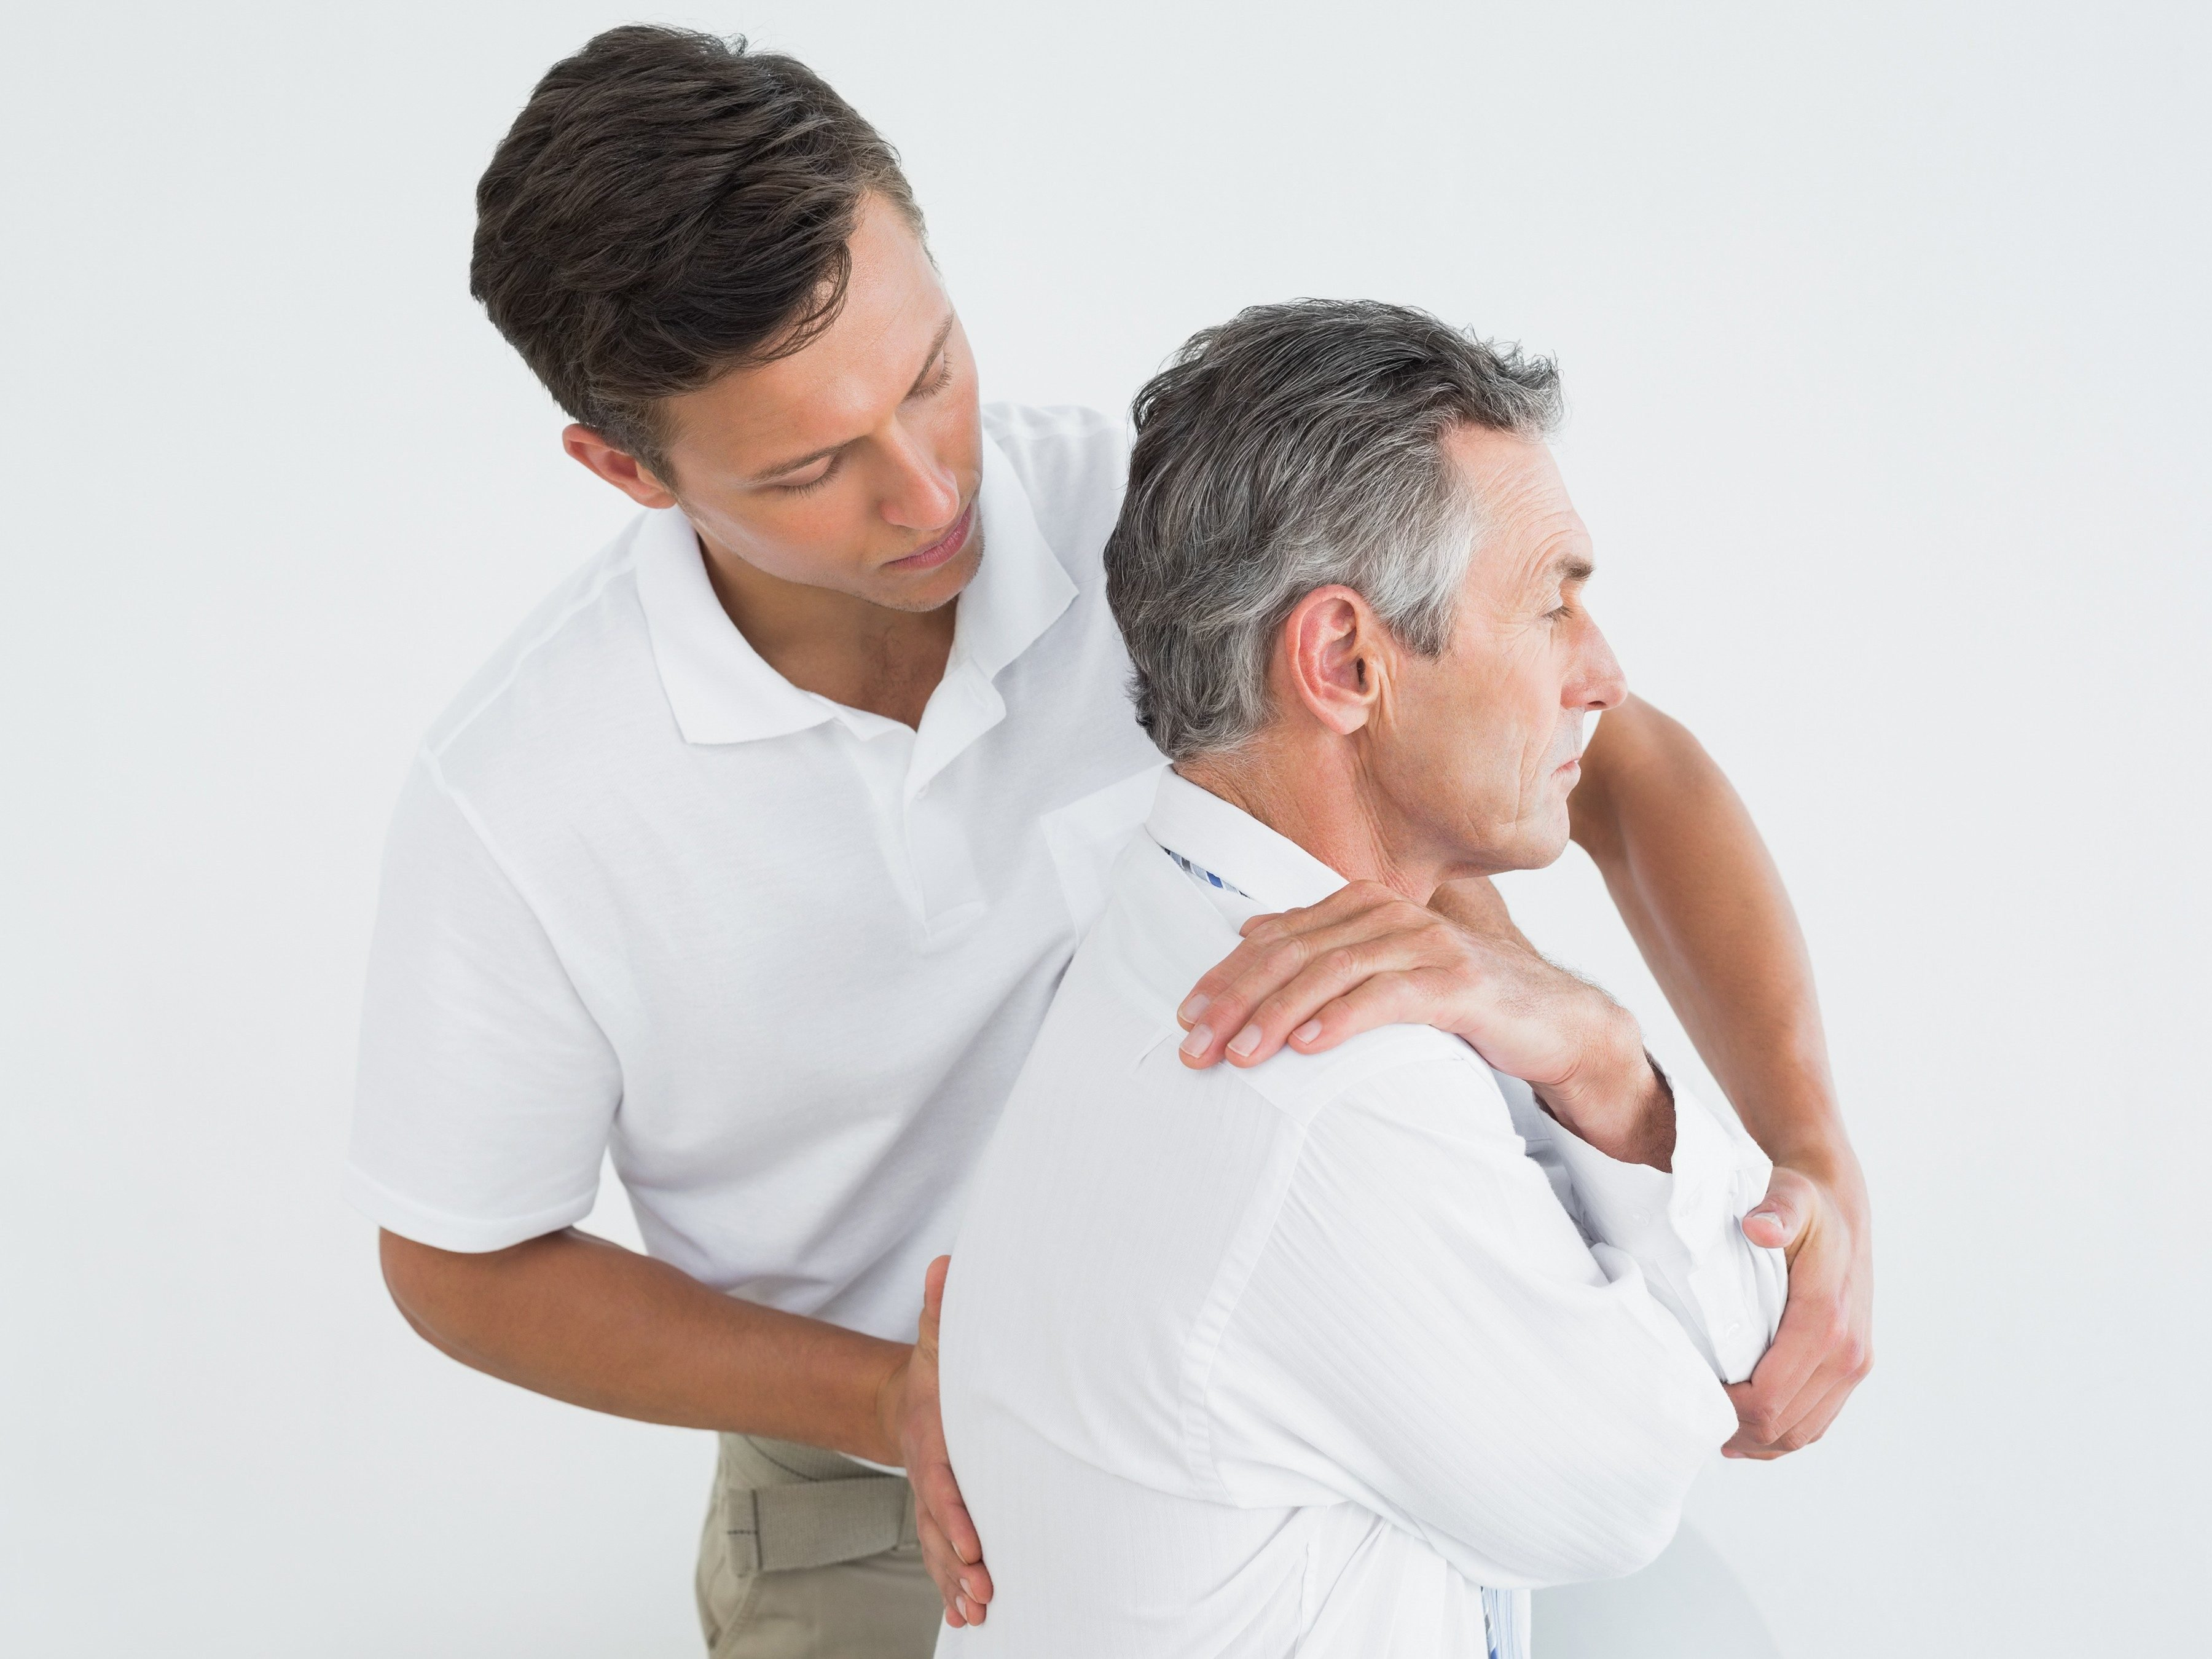 3. What You Should Know About Chiropractic Treatment